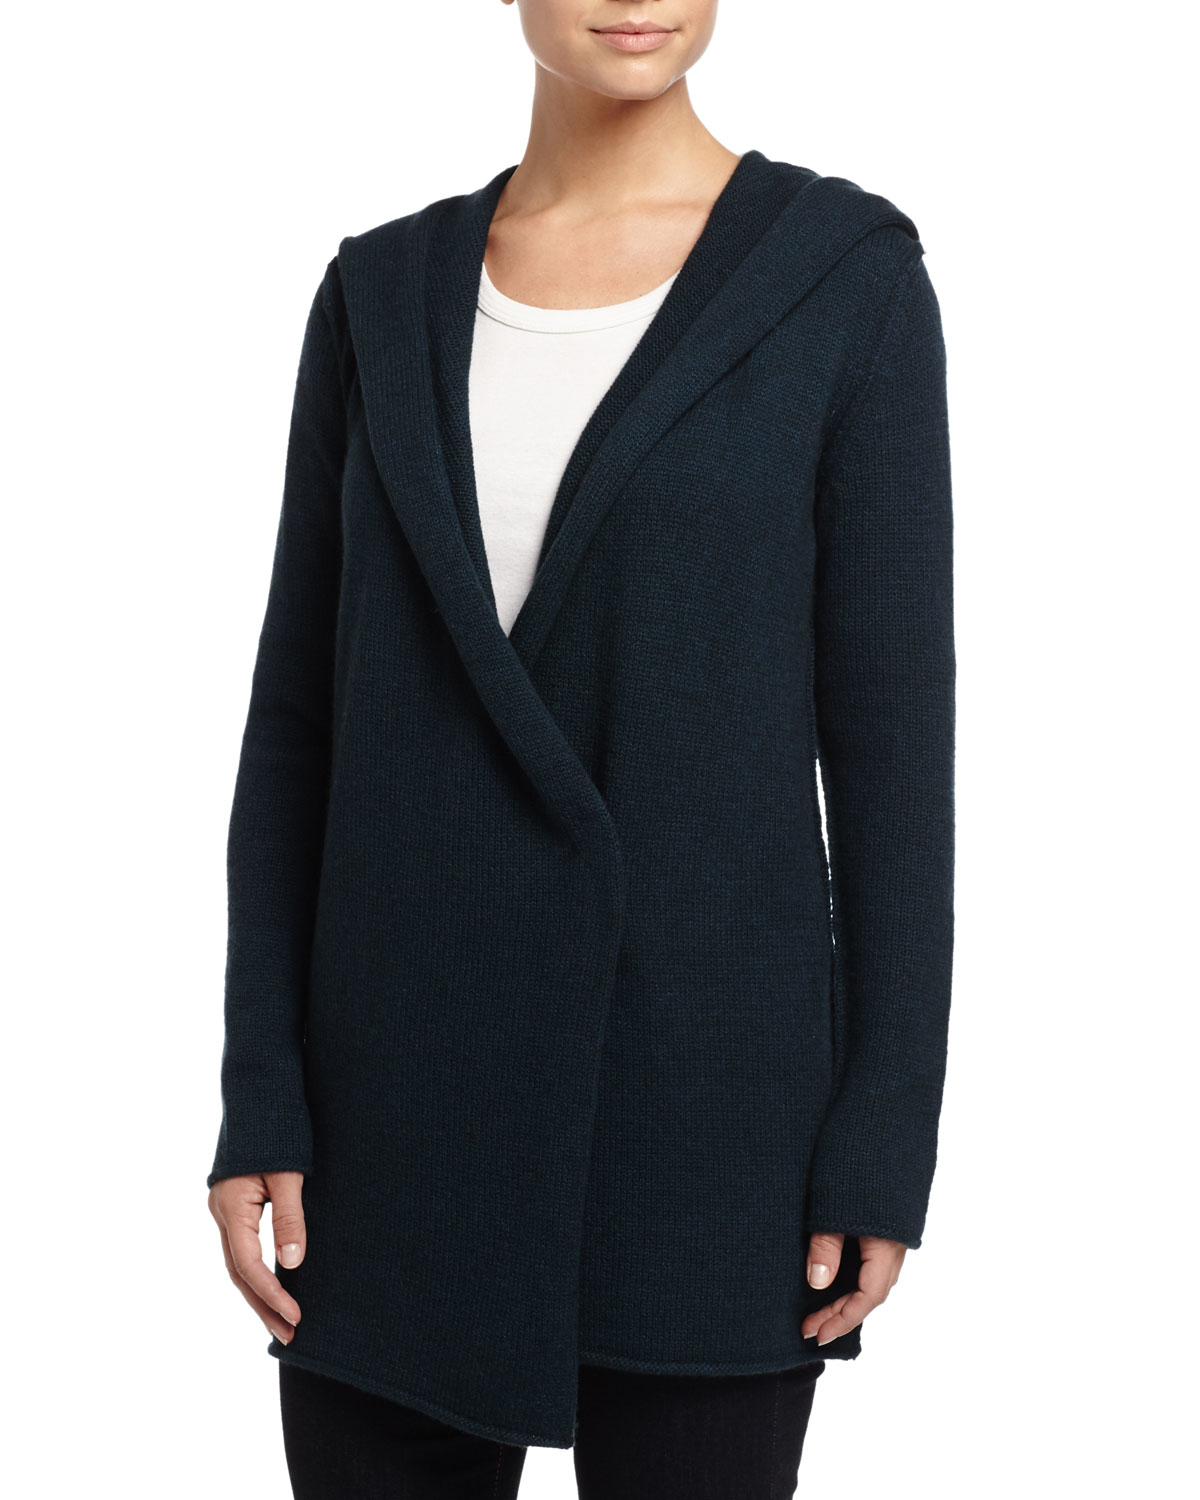 Vince Sophie Long Hooded Cardigan in Black | Lyst